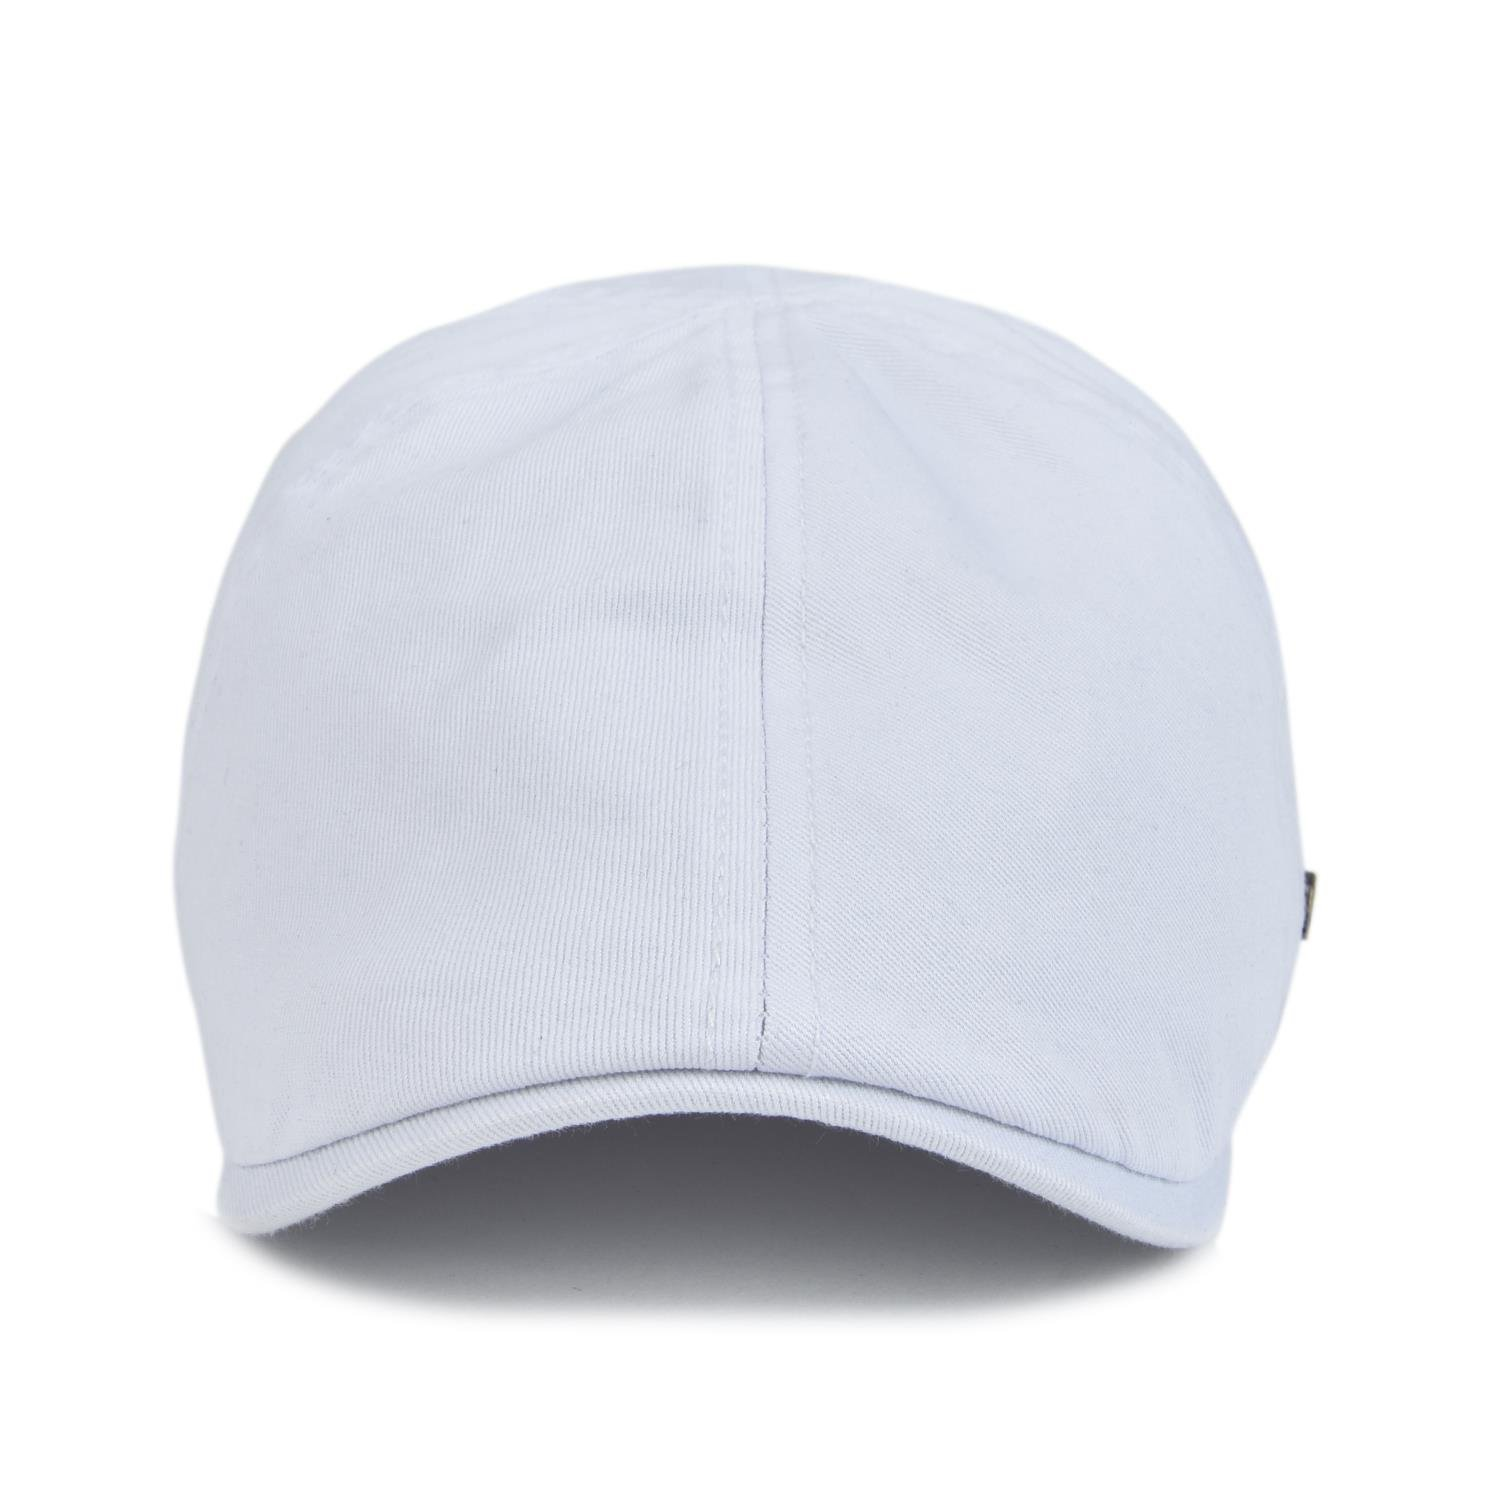 VOBOOM Cotton Flat Cap Cabbie Hat Gatsby Ivy Cap Irish Hunting Hat Newsboy  (White) - BDBL063-Whit   Newsboy Caps   Clothing 147bf084cb6f